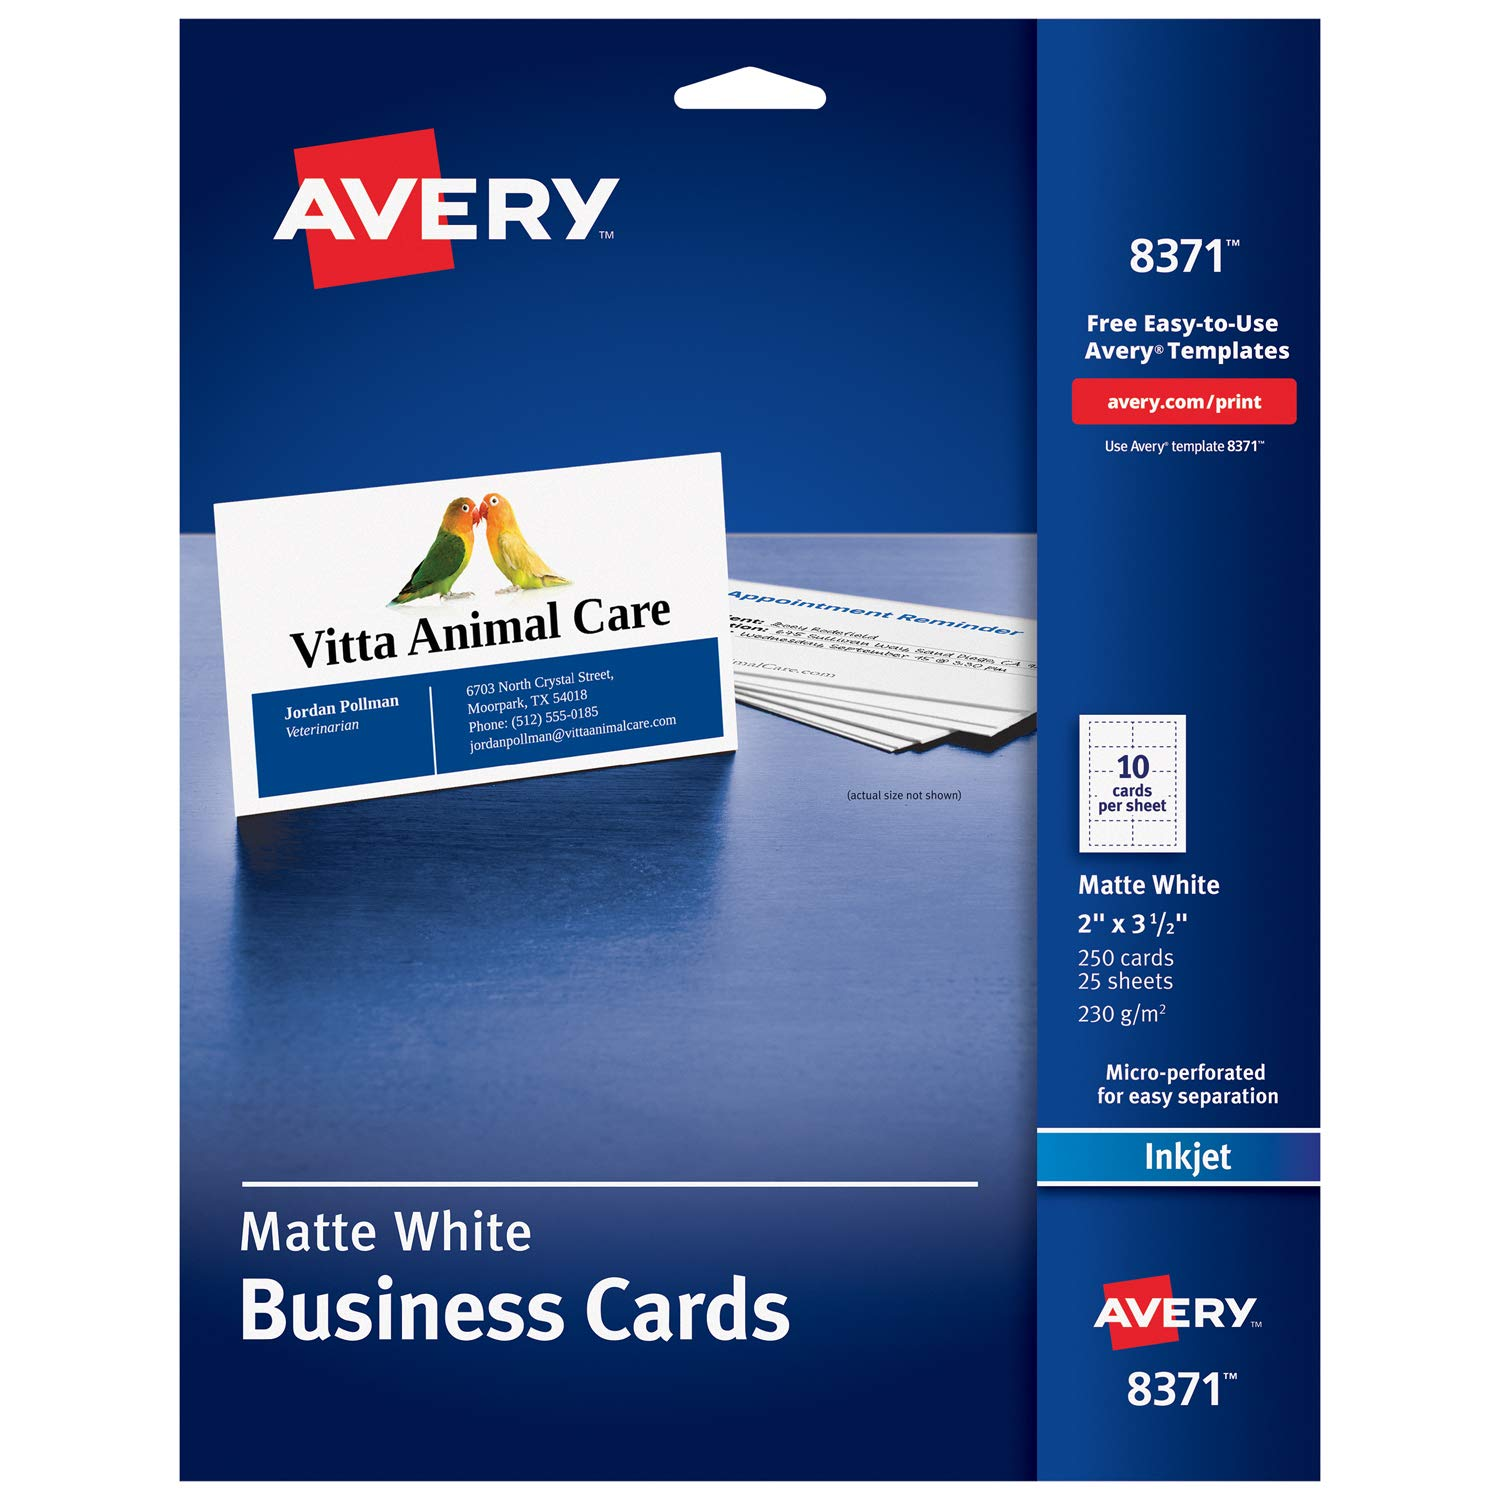 Avery 8371 250pc(s) business card - business cards (88.9 mm, 50.8 mm, 2 sheets, 250 pc(s))